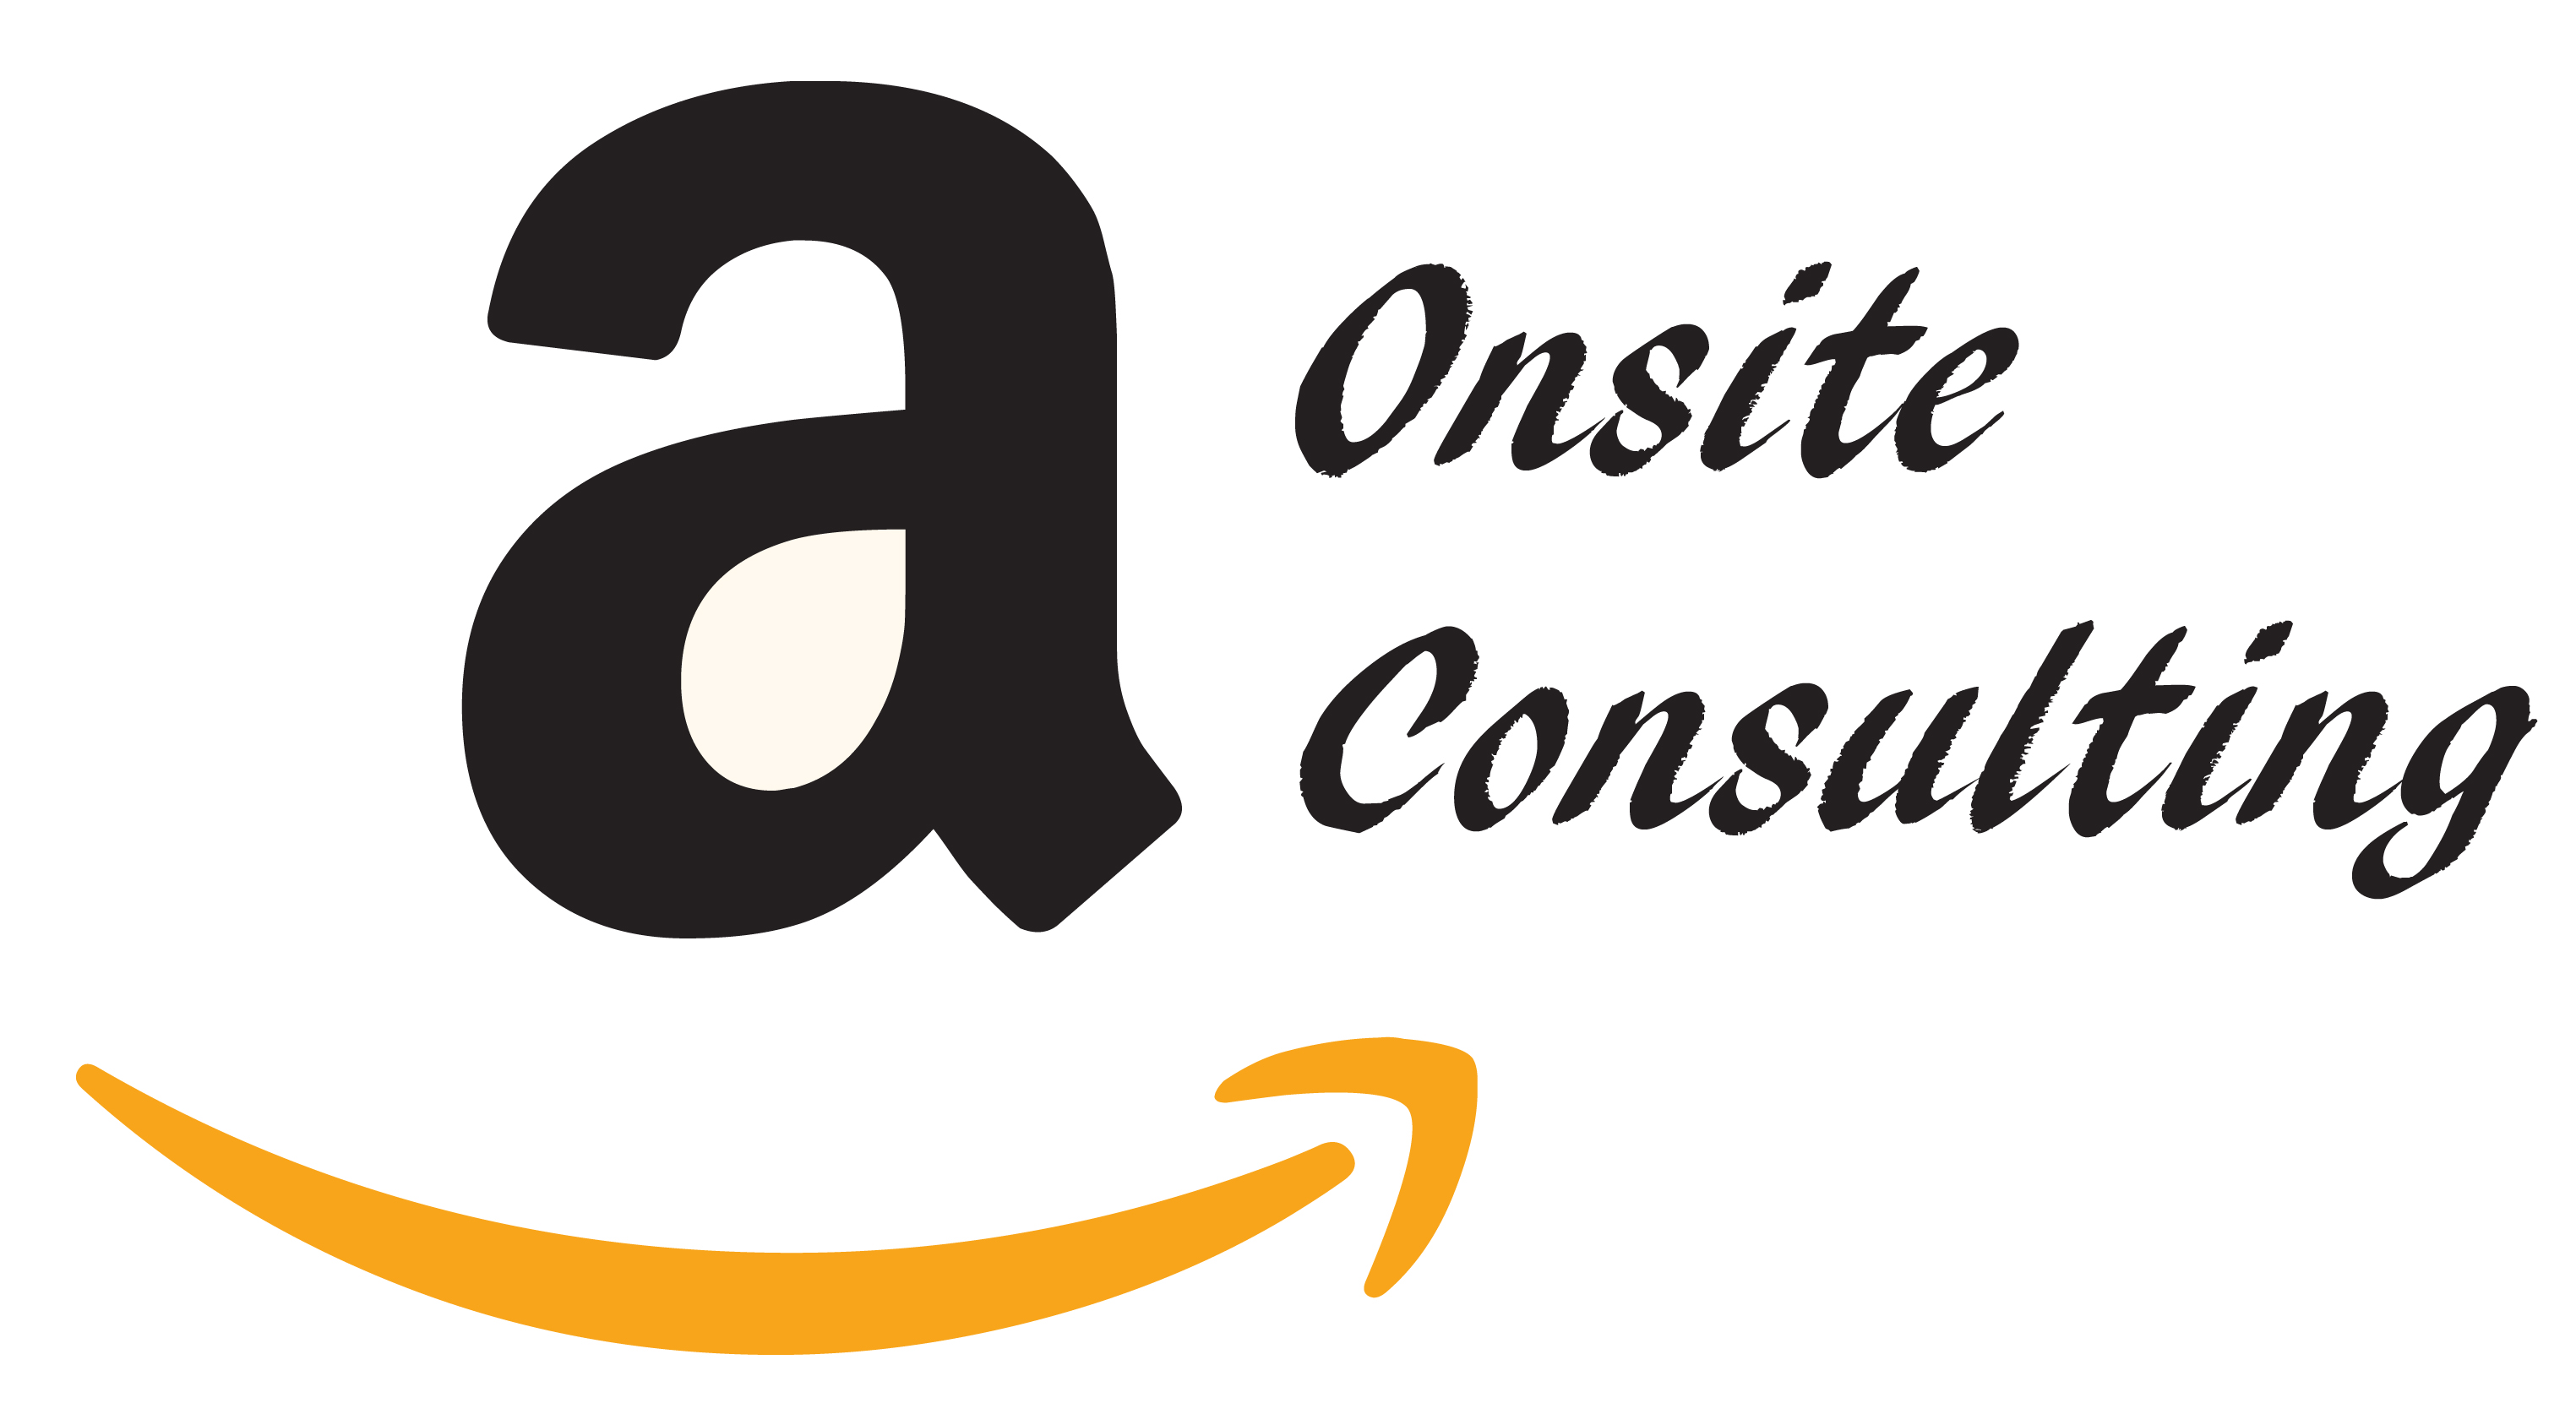 amazon onsite consulting